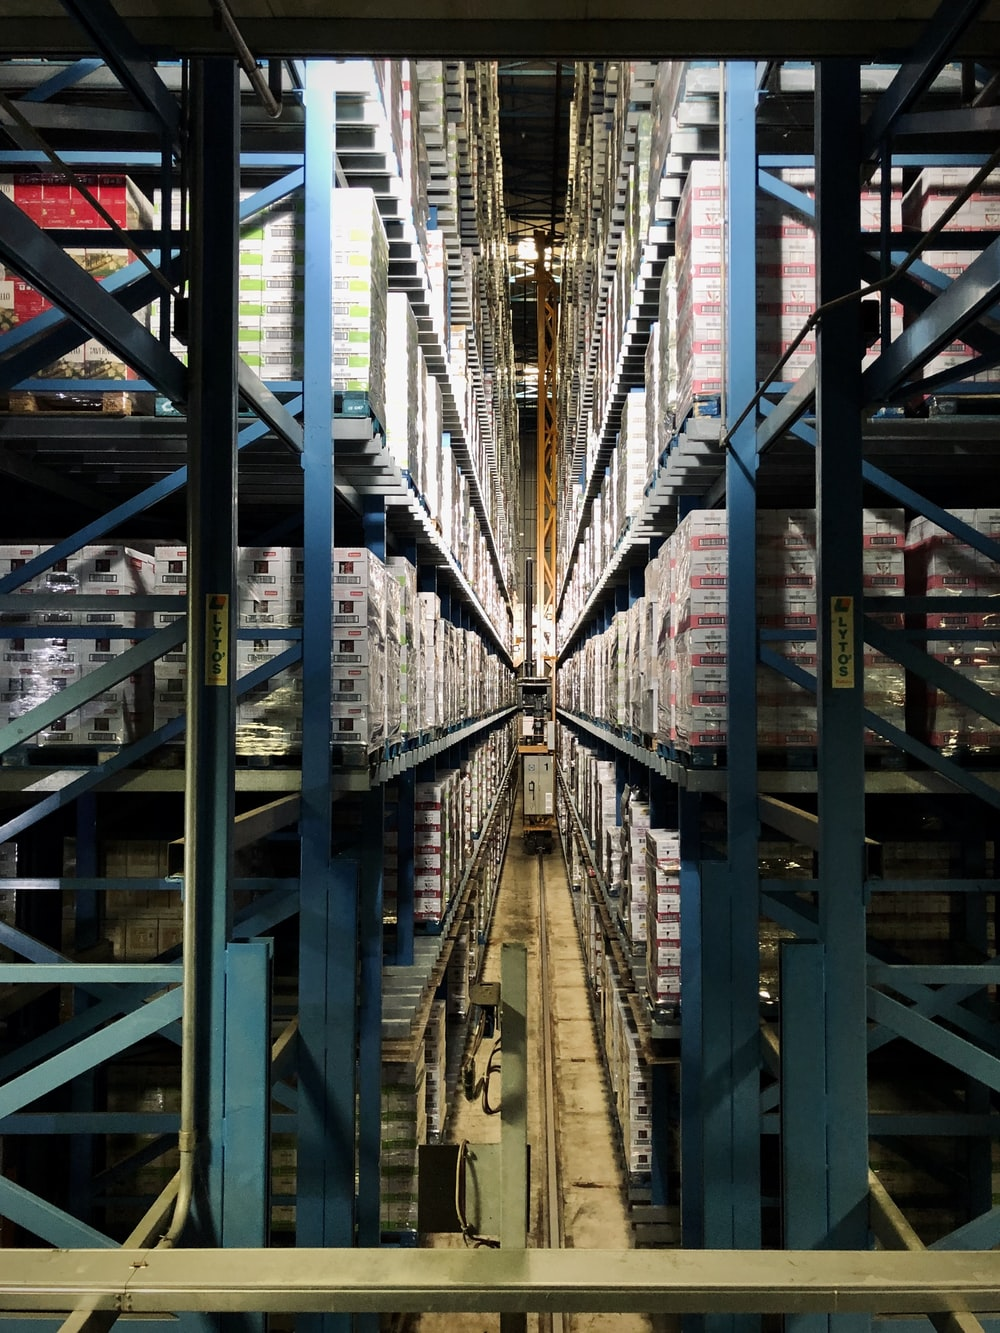 27 Warehouse Pictures Download Free Images On Unsplash